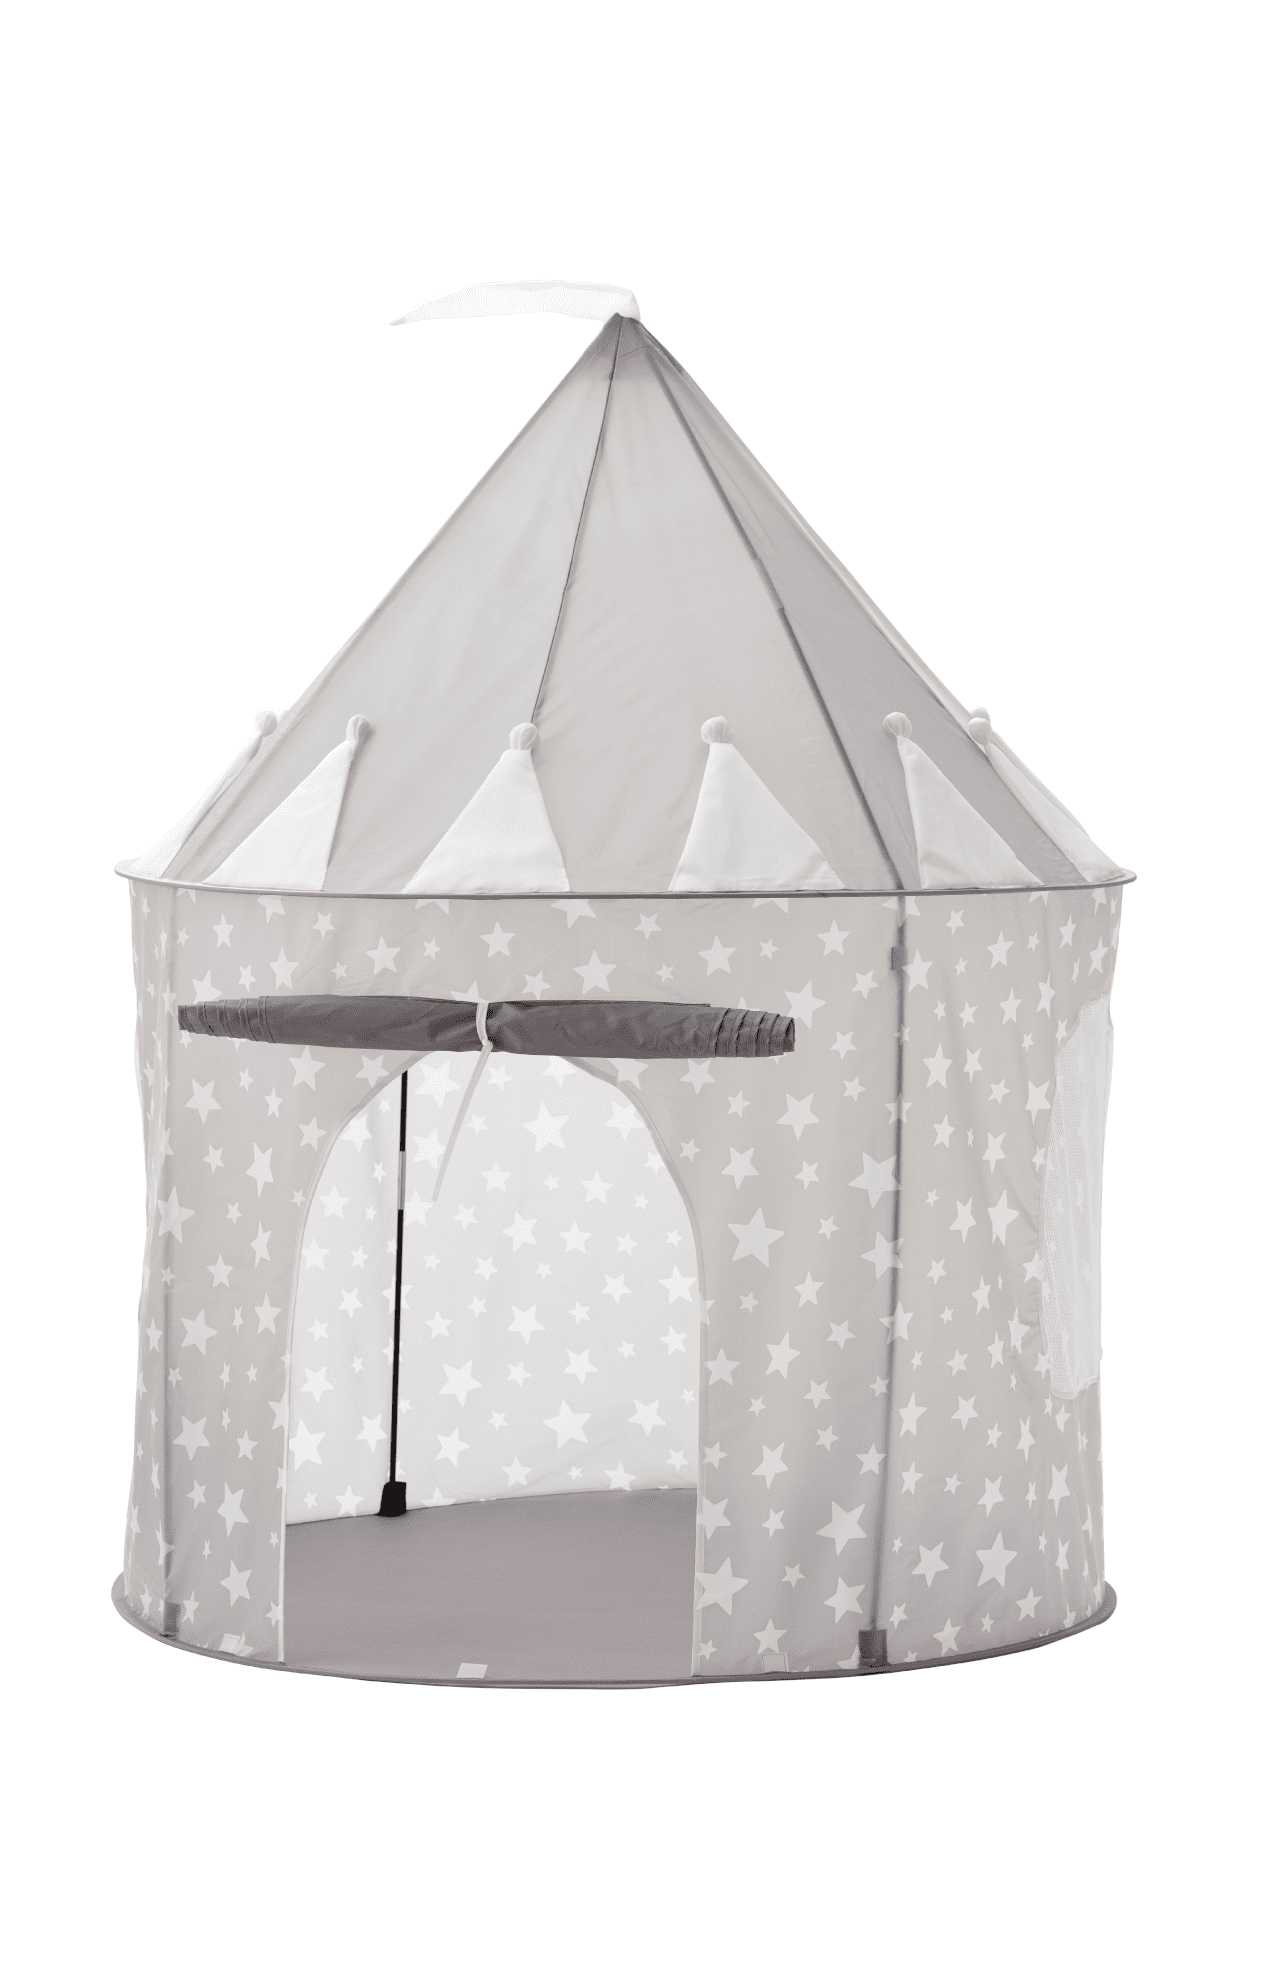 Kids Concept Play Tent - Grey Stars - The Modern Nursery 3574d4c47abee